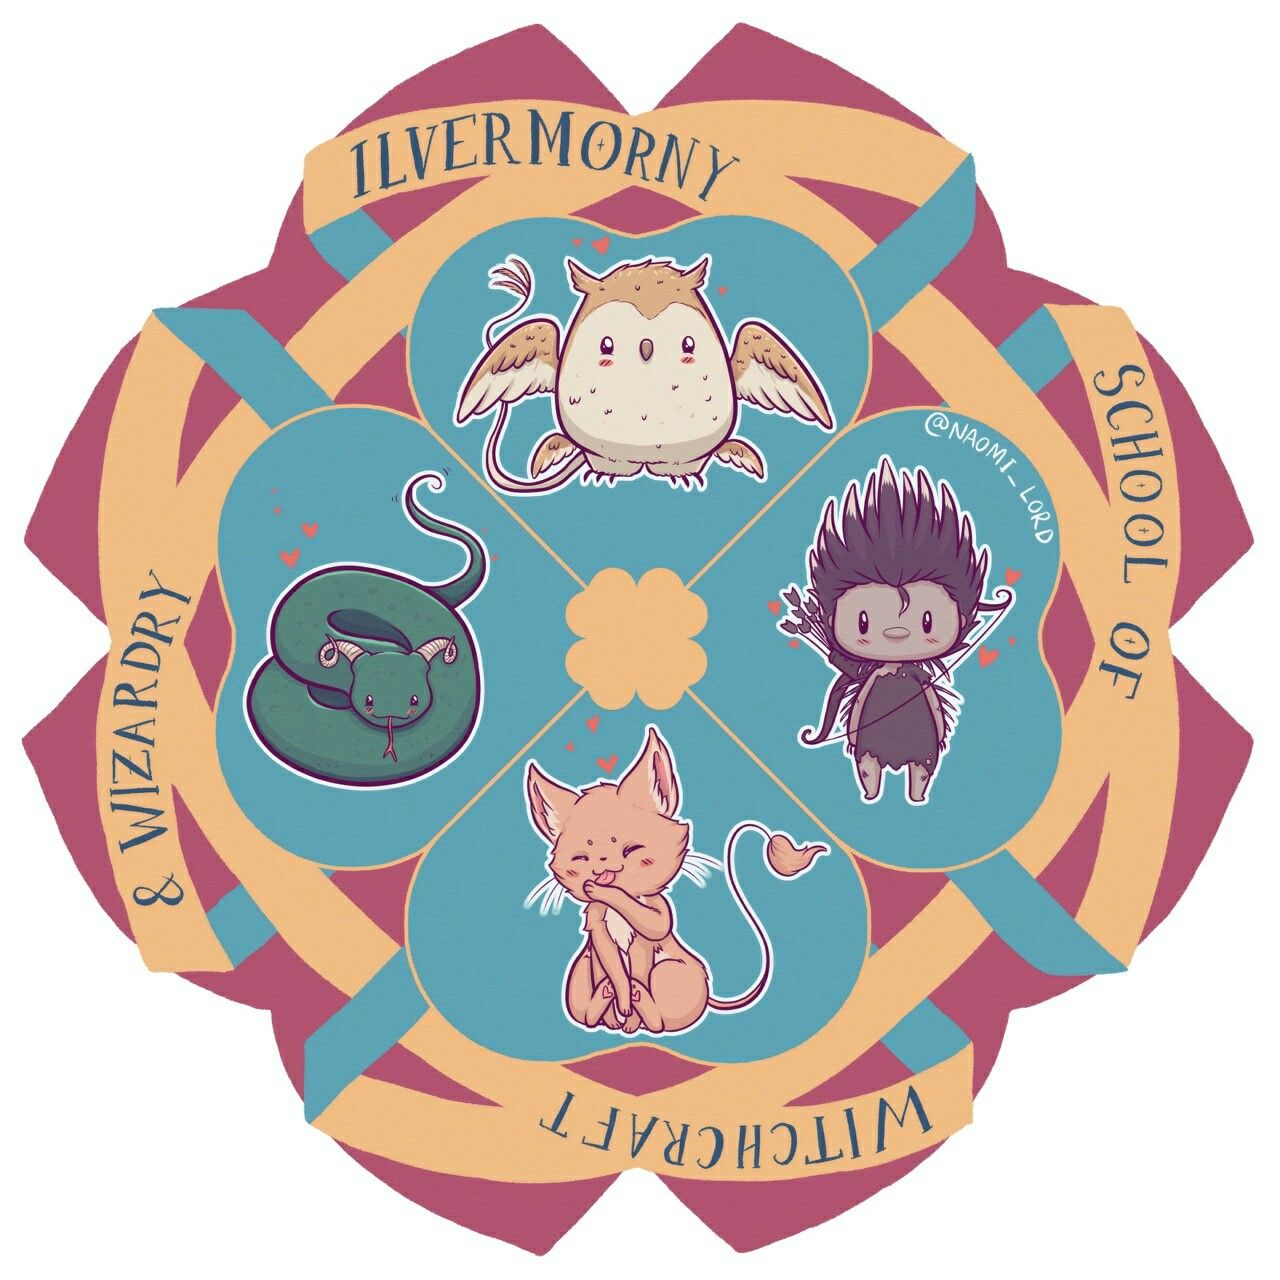 1280x1280 Ilvermorny Harry Potter Ilvermorny, Harry Potter